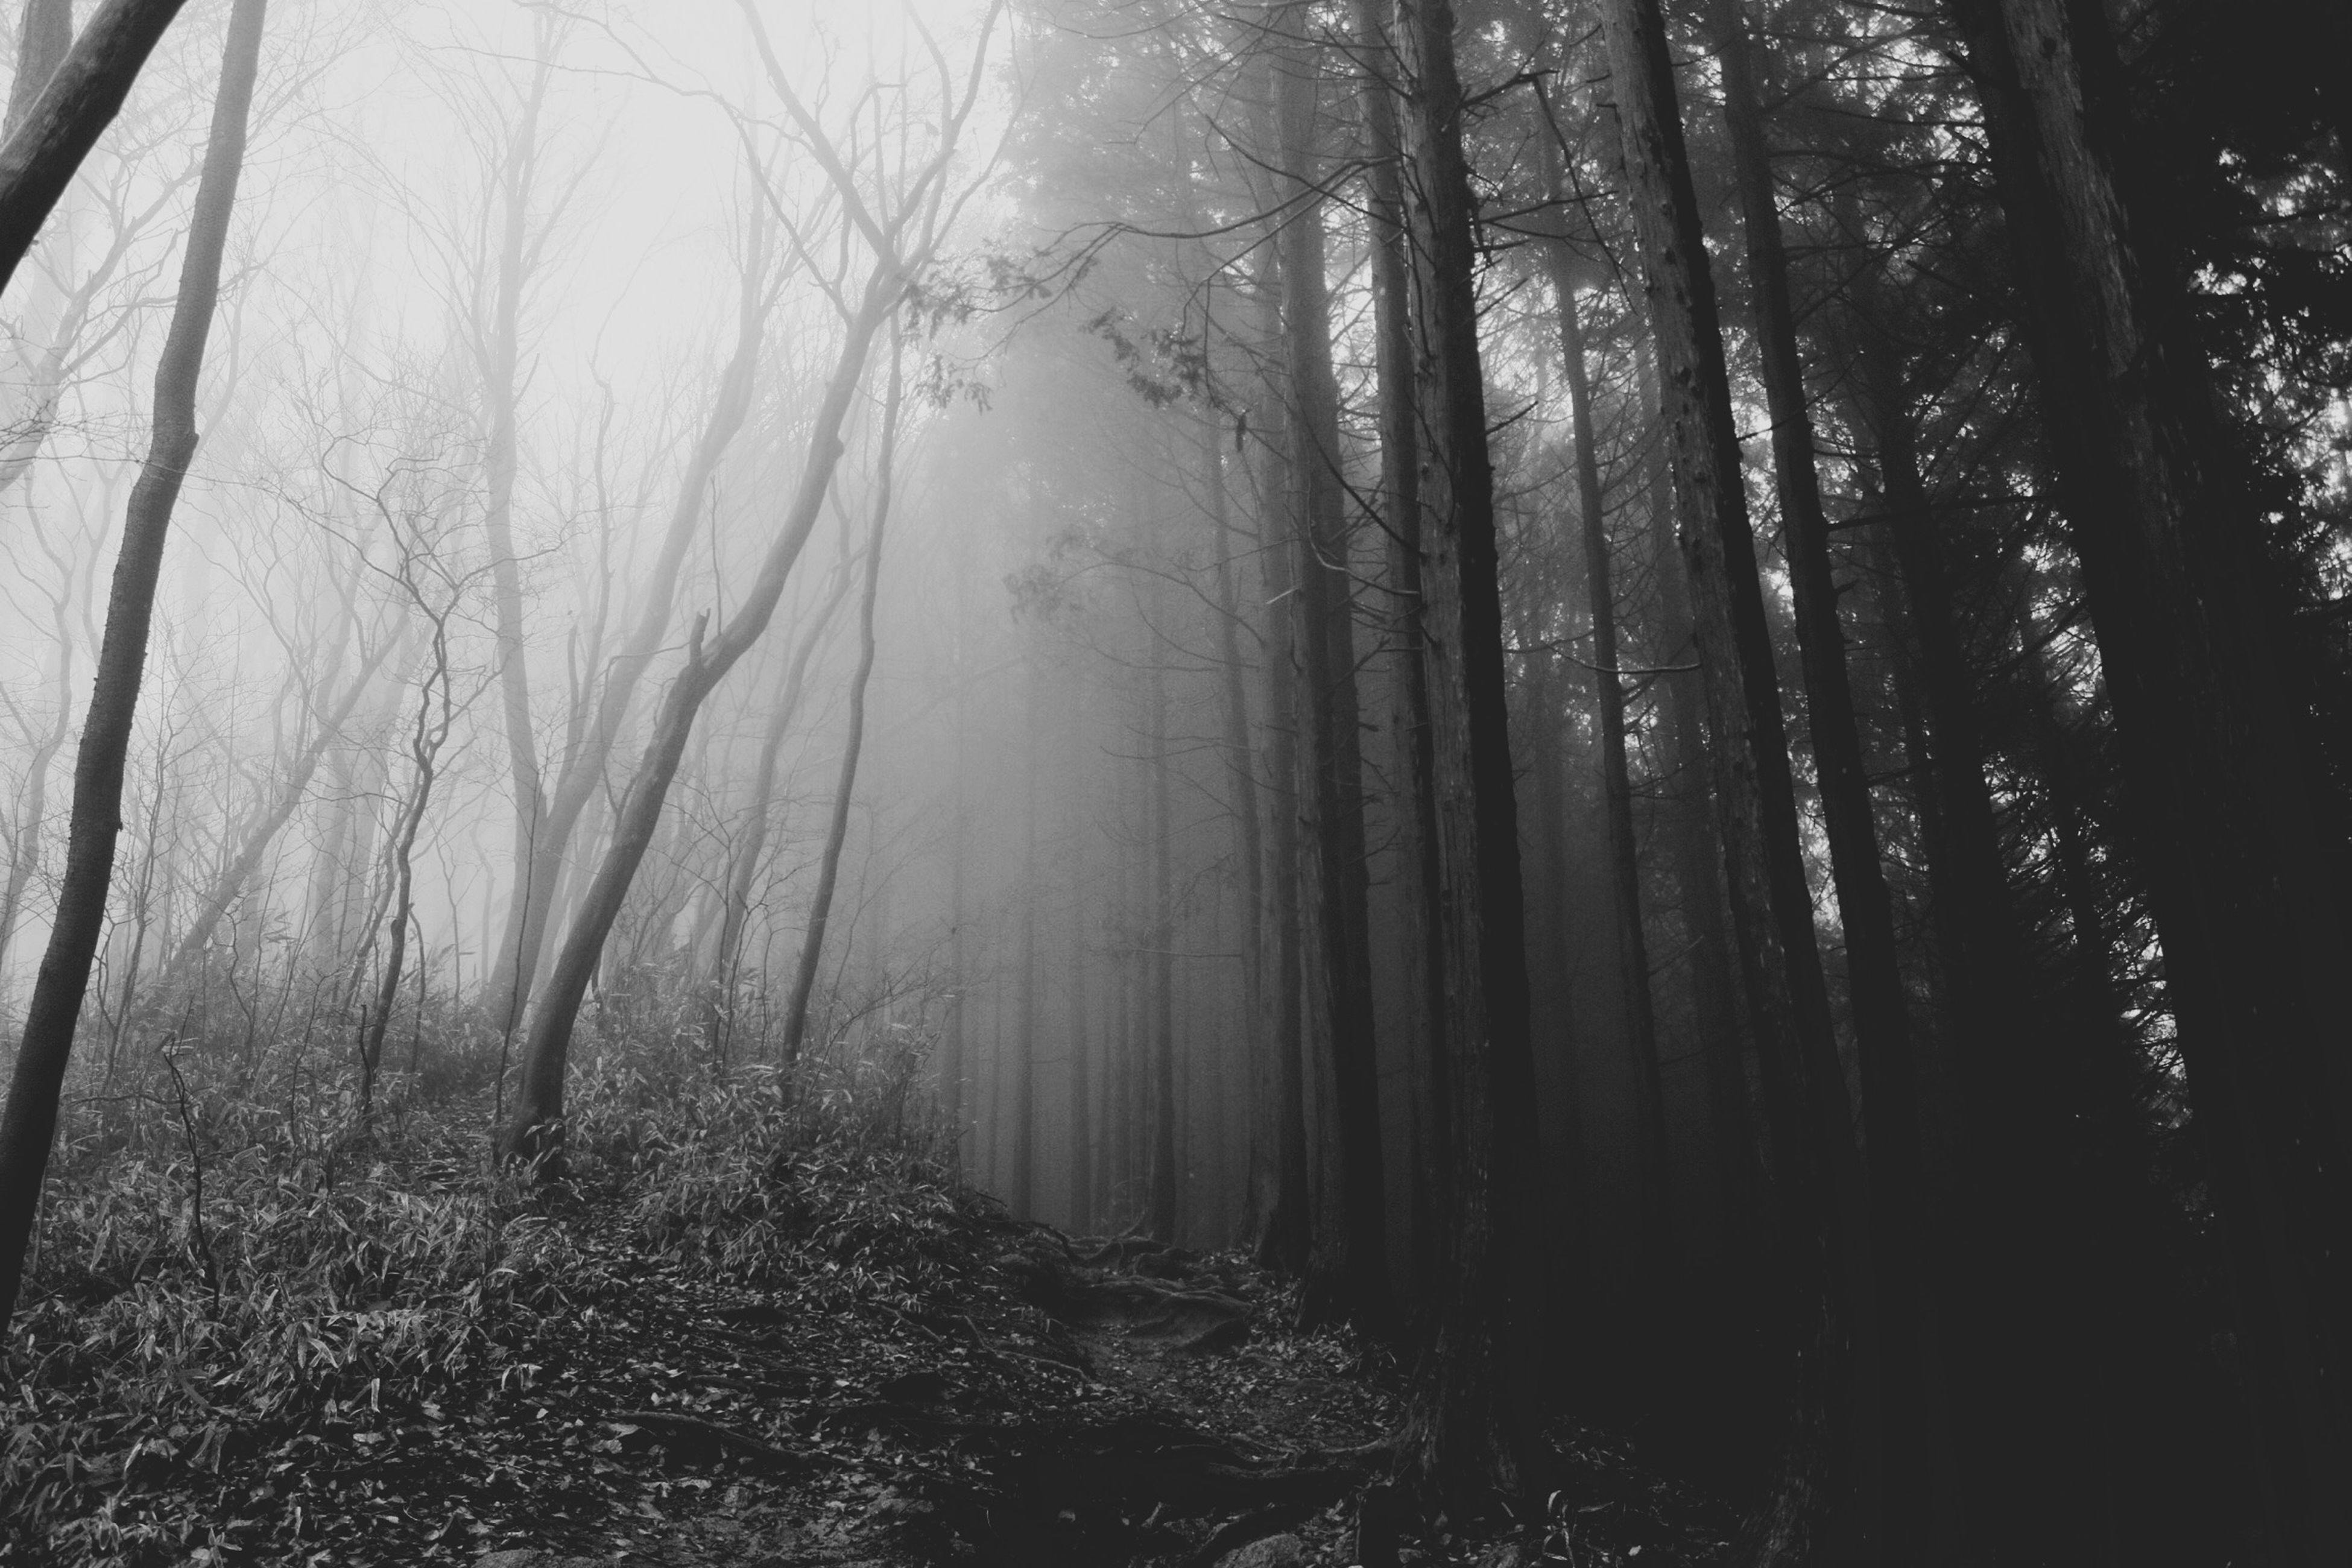 tree, forest, tree trunk, woodland, tranquility, tranquil scene, nature, growth, the way forward, beauty in nature, scenics, branch, fog, non-urban scene, day, outdoors, landscape, no people, sunlight, woods